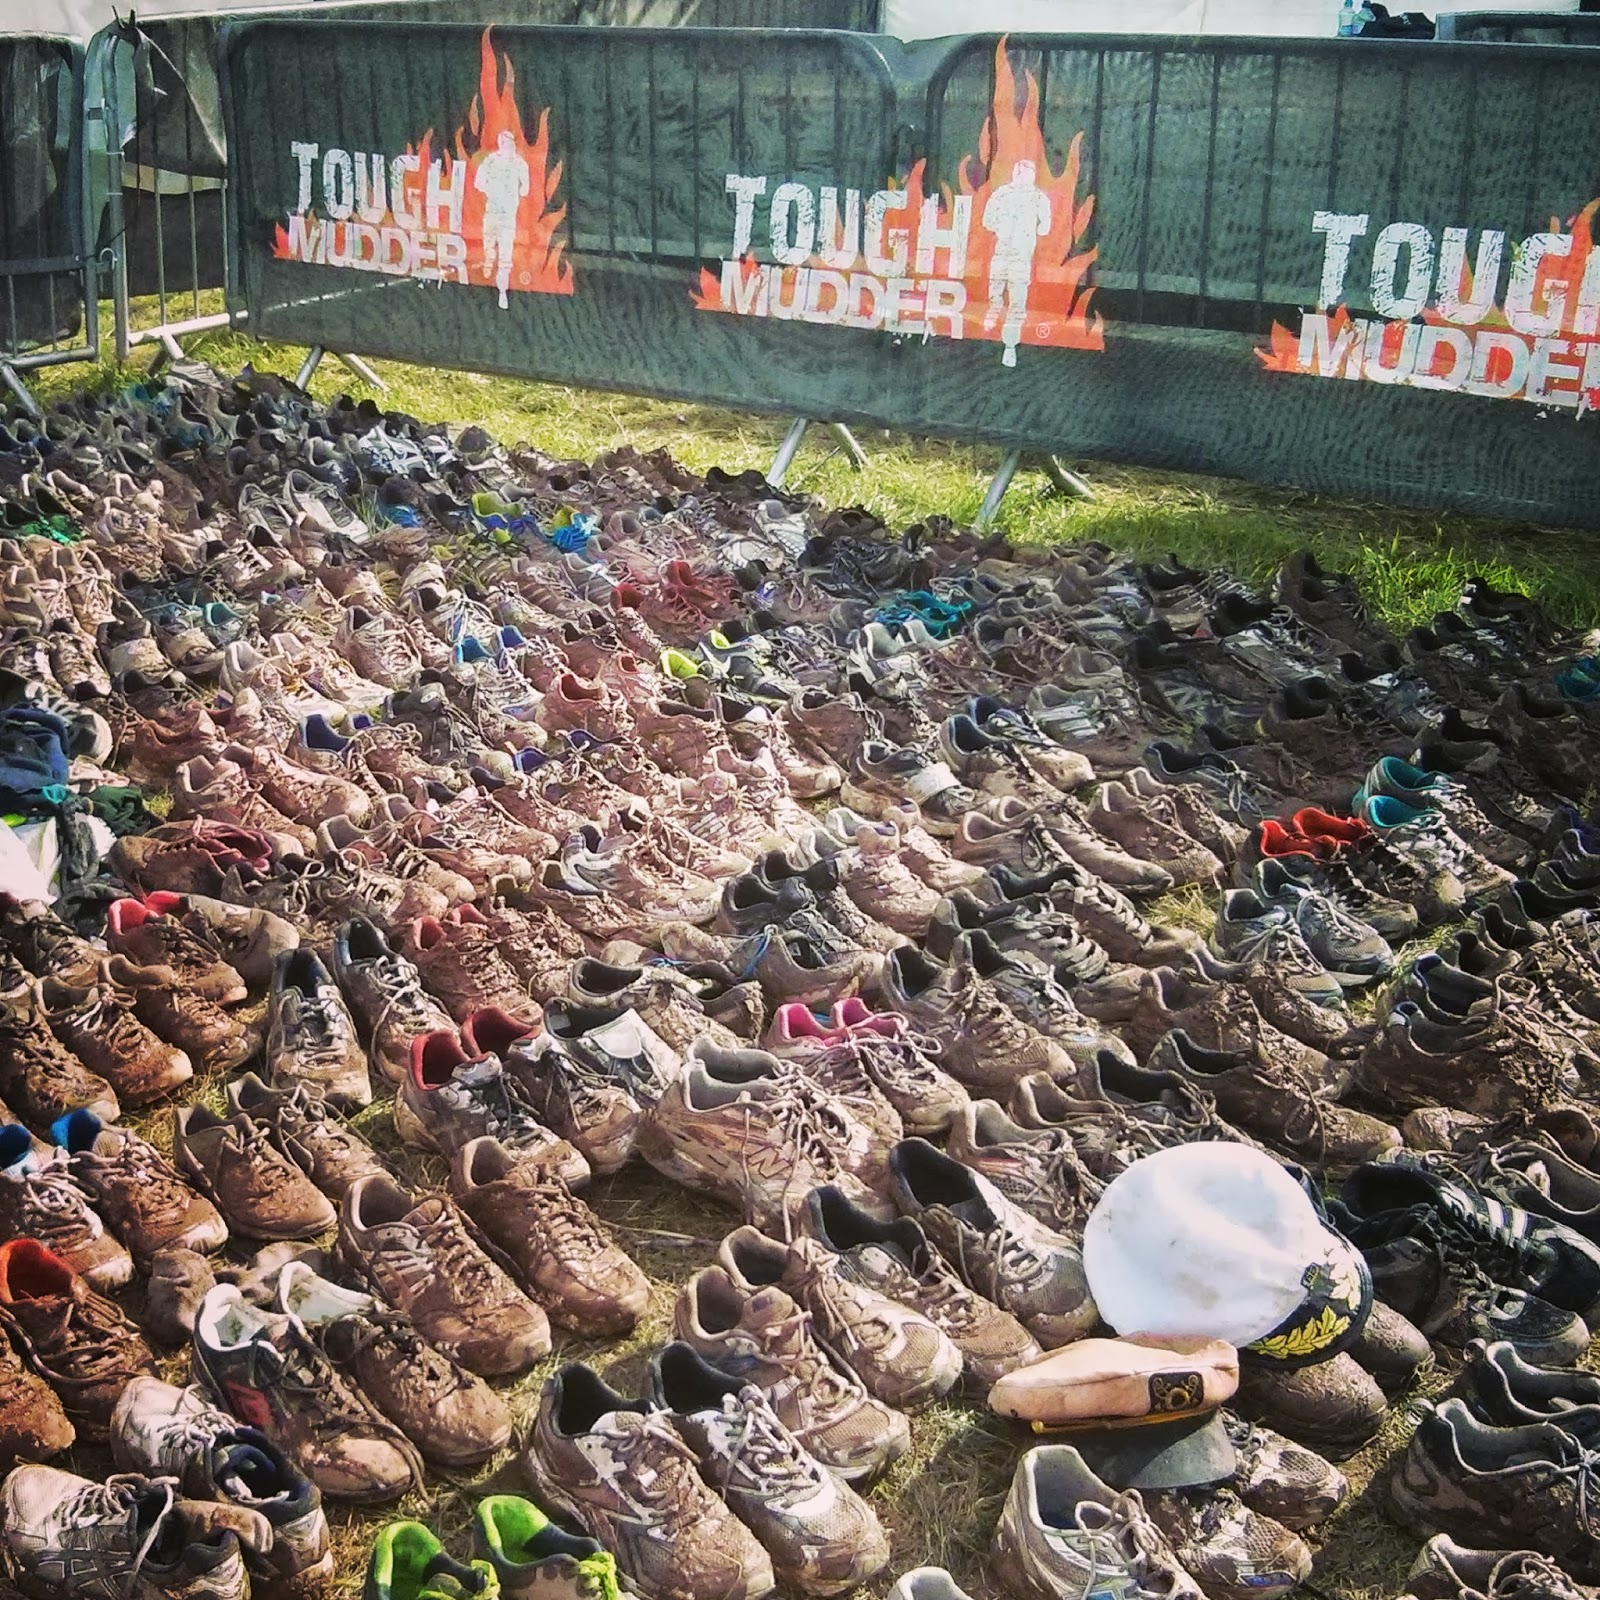 Donate your muddy shoes here